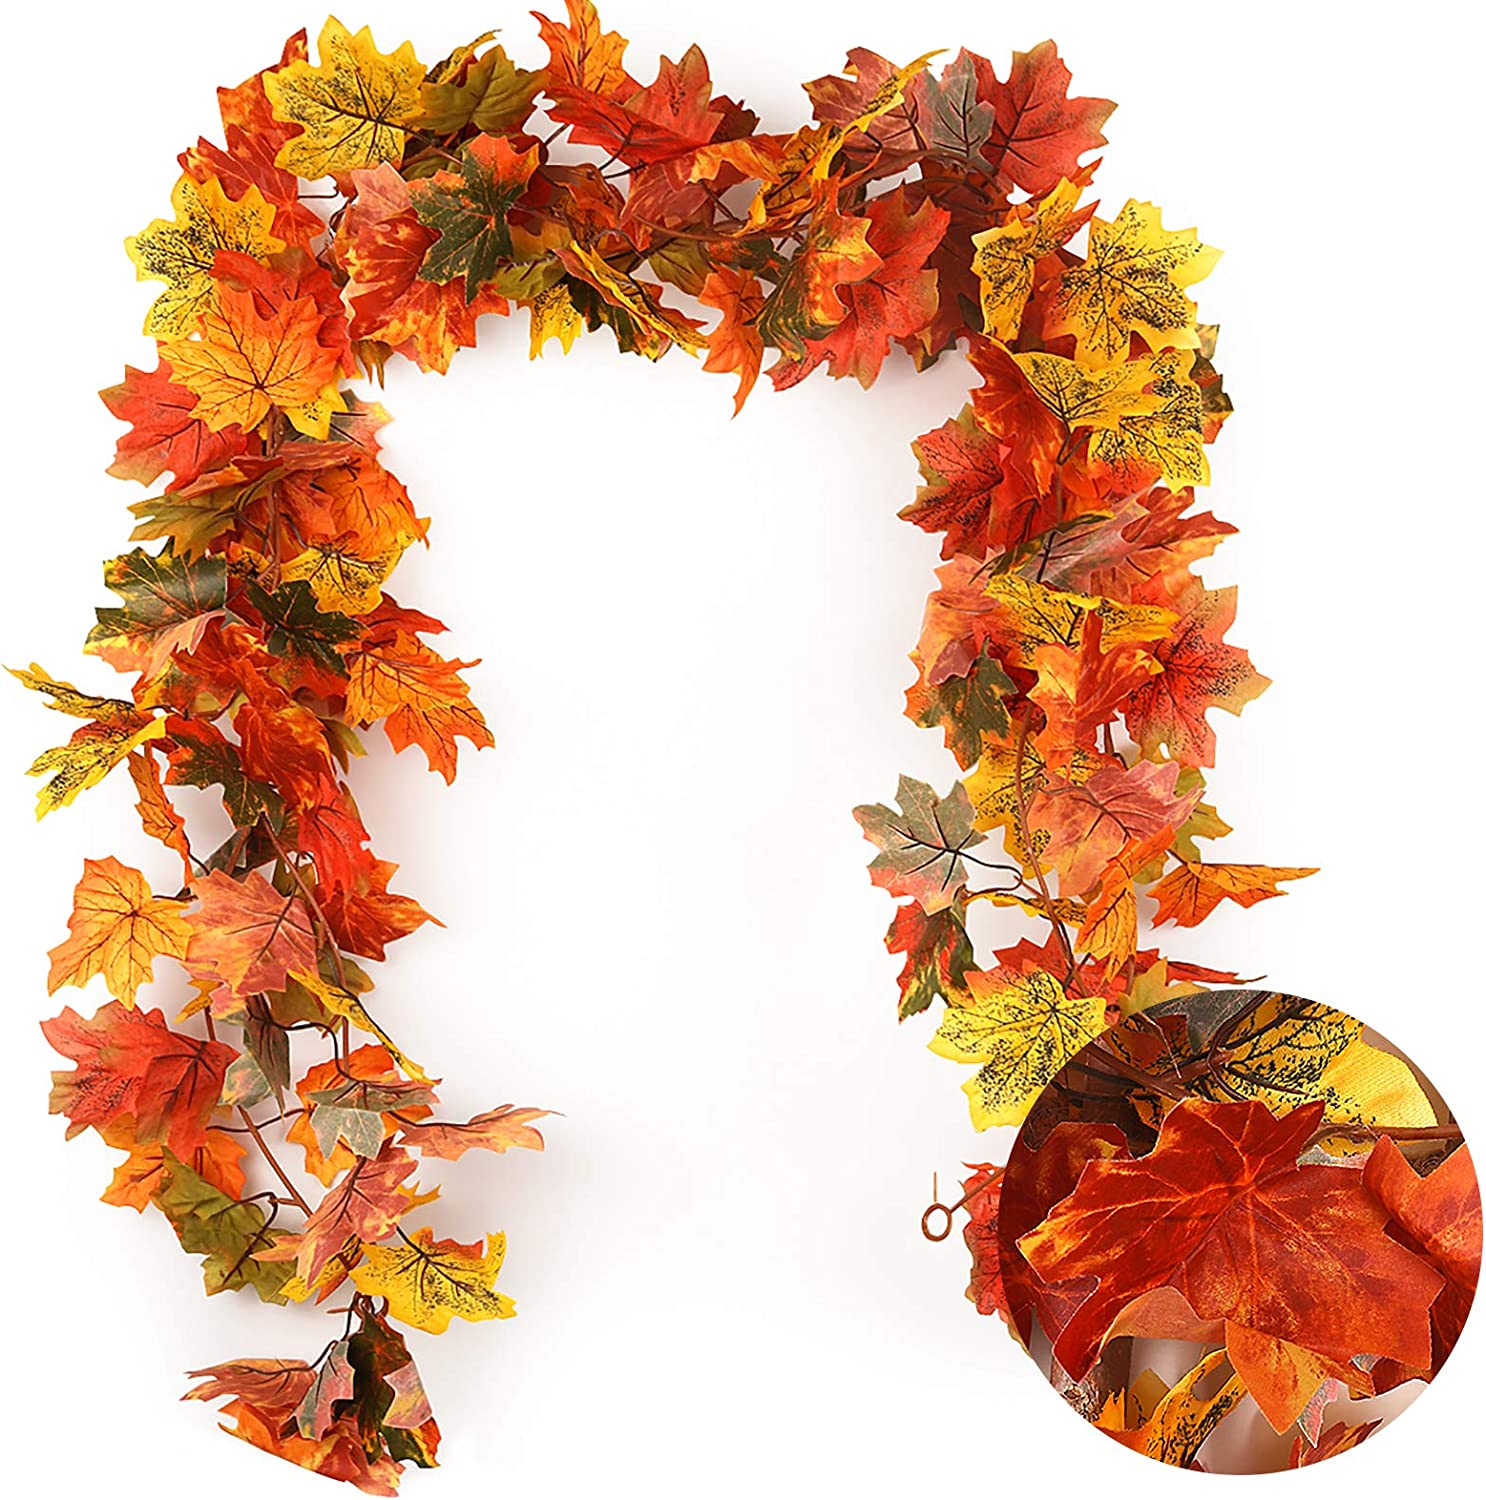 RECUTMS 2 Pack Fall Maple Garland - 5.8 FT/Pcs Autumn Hanging Fall Leave Vines for Home Garden Wedding Party Thanksgiving Dinner Fireplace Door Frame Doorway Backdrop Christmas Decor